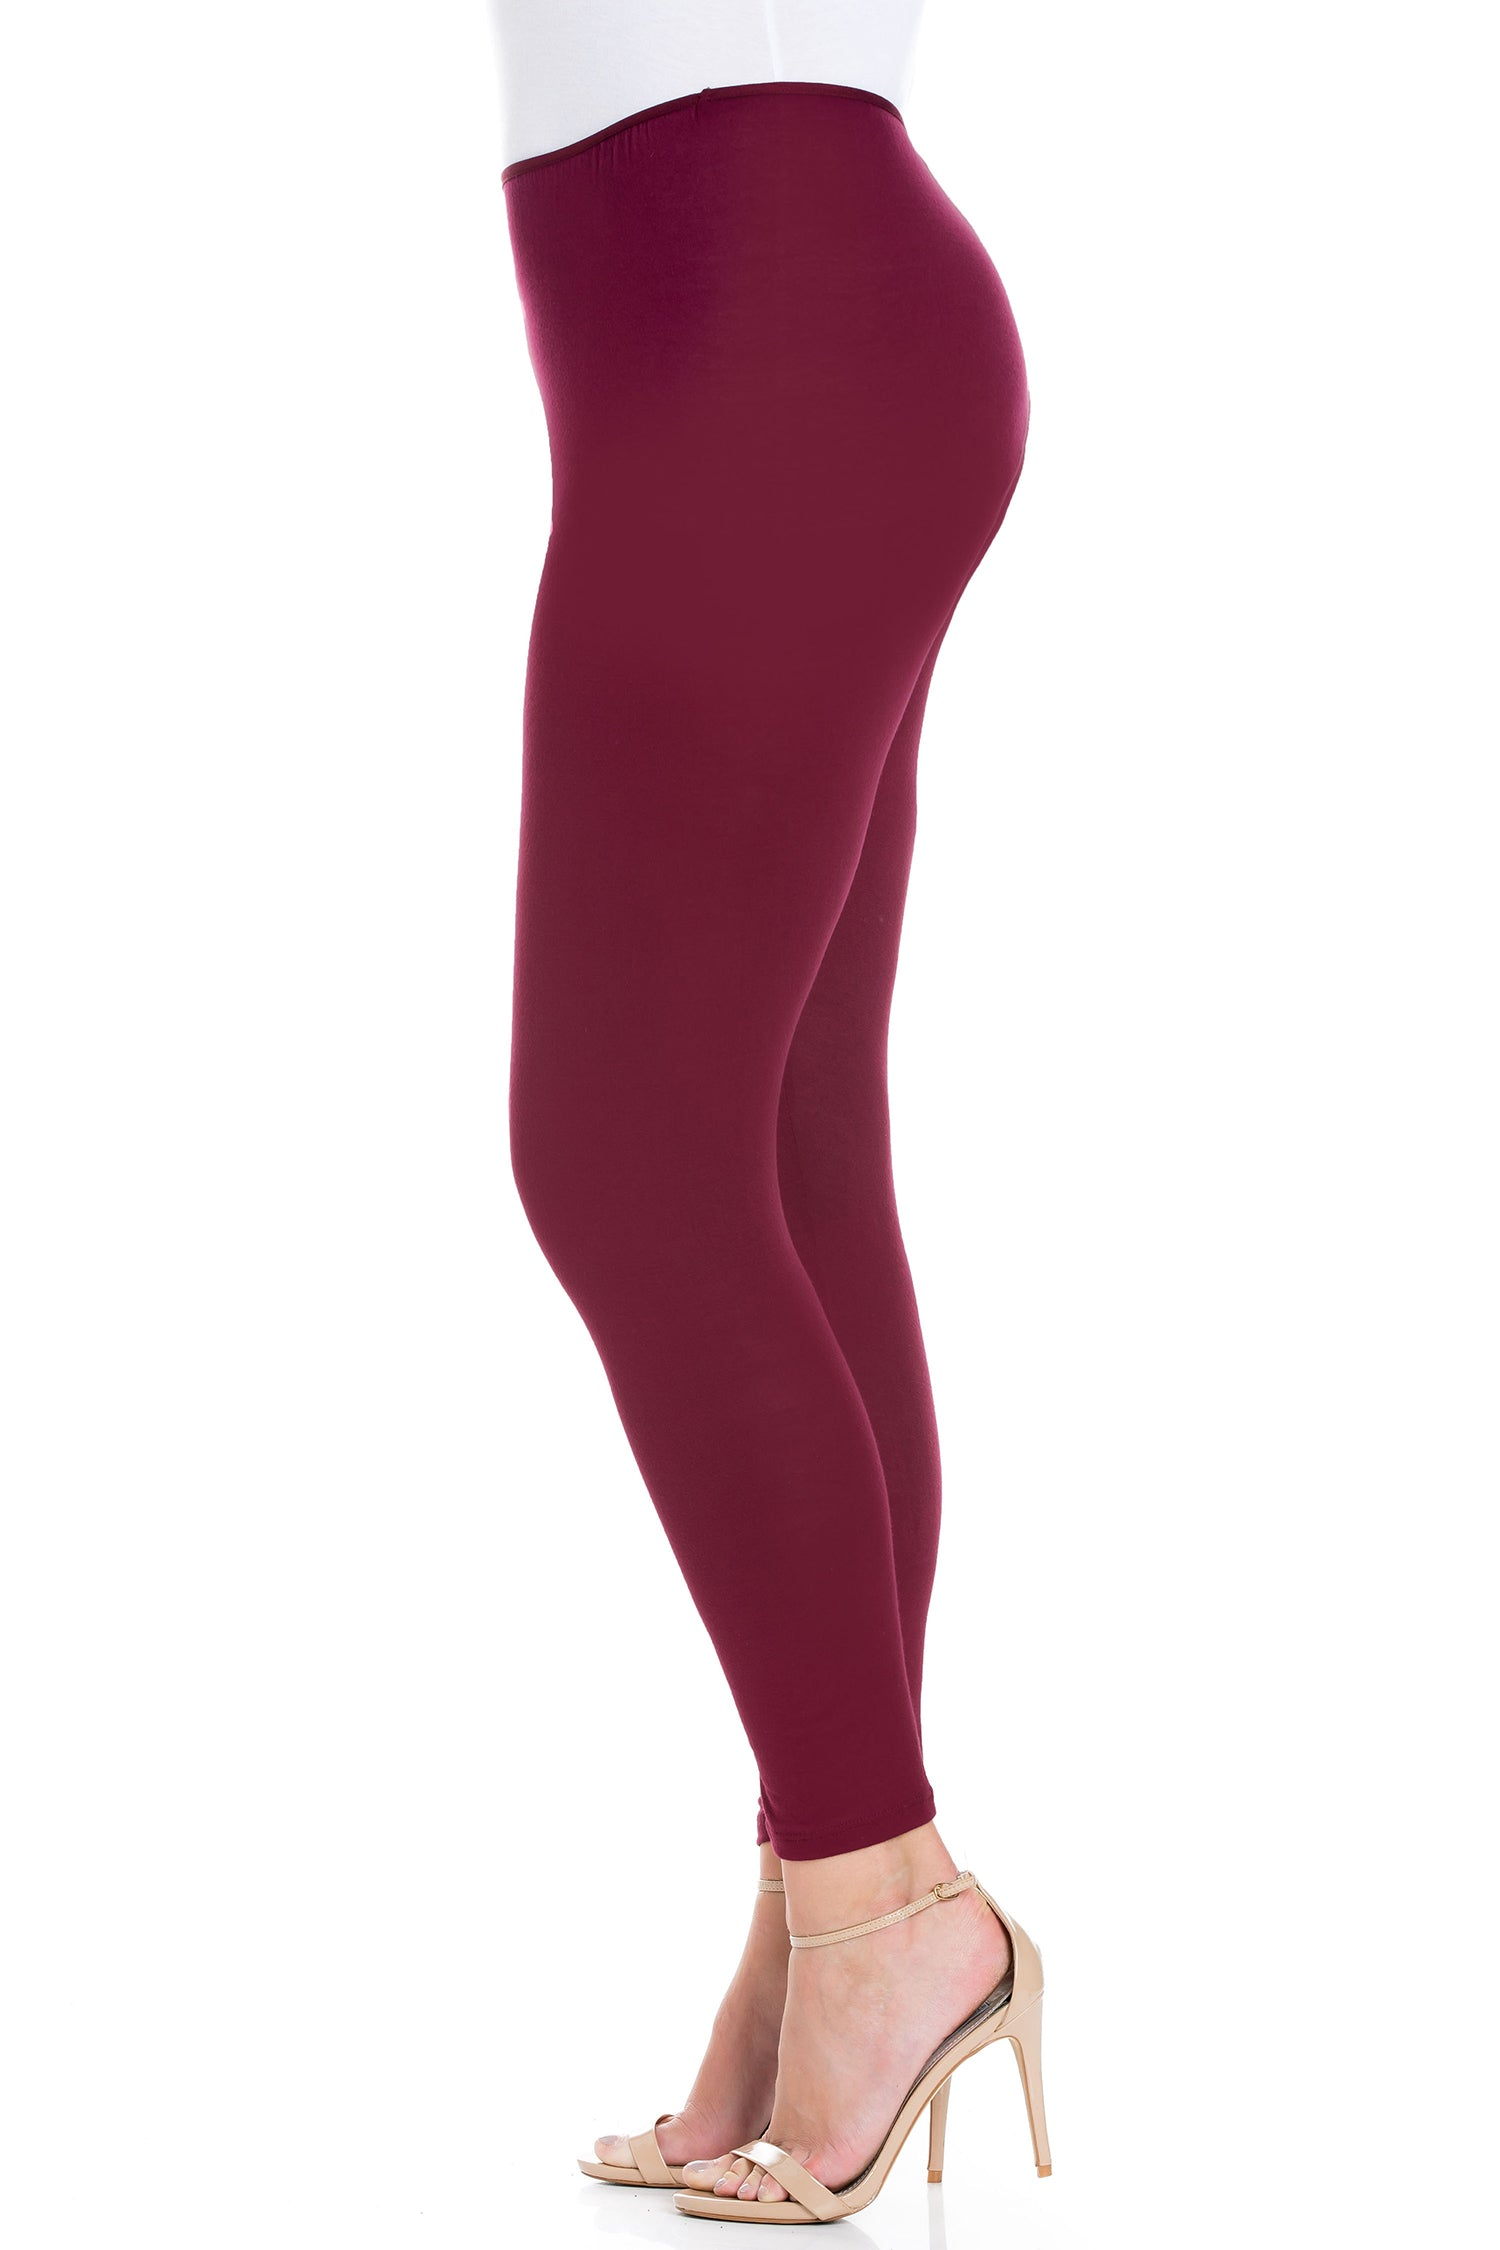 24seven Comfort Apparel Comfortable Ankle Length Plus Size Leggings-PANT-24Seven Comfort Apparel-WINE-1X-24/7 Comfort Apparel